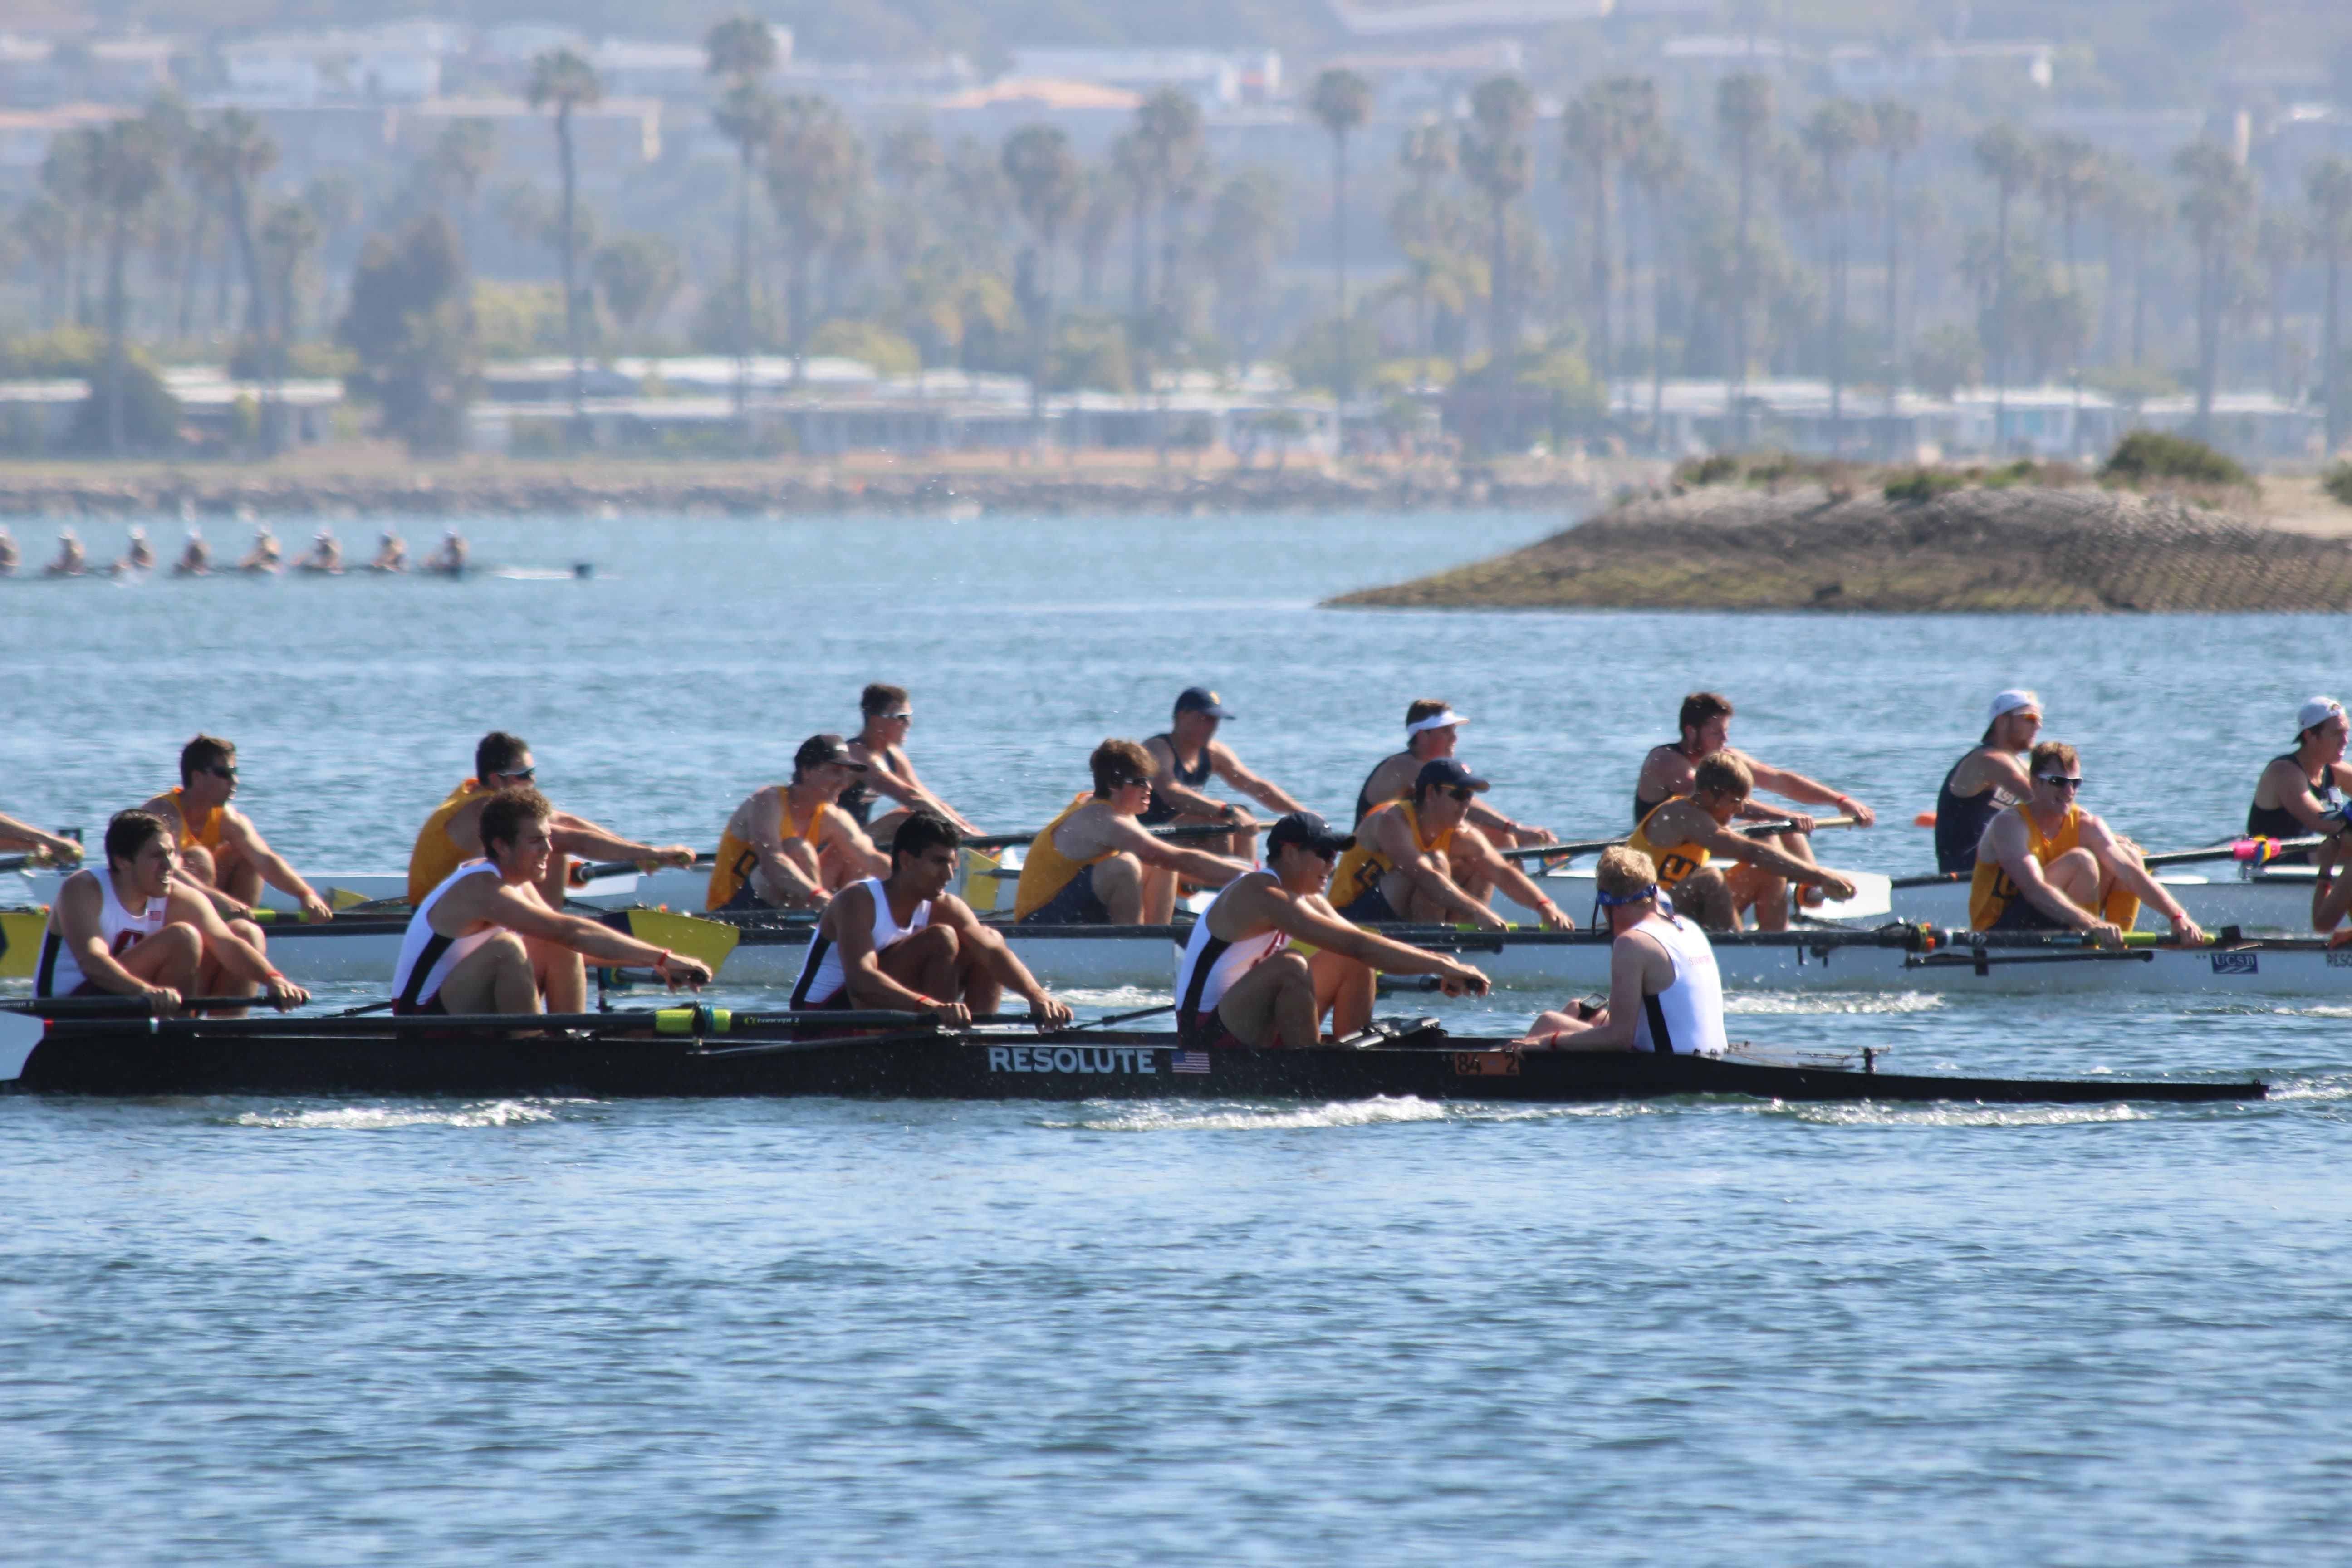 Rowers at the 2016 San Diego Crew Classic race to the finish.